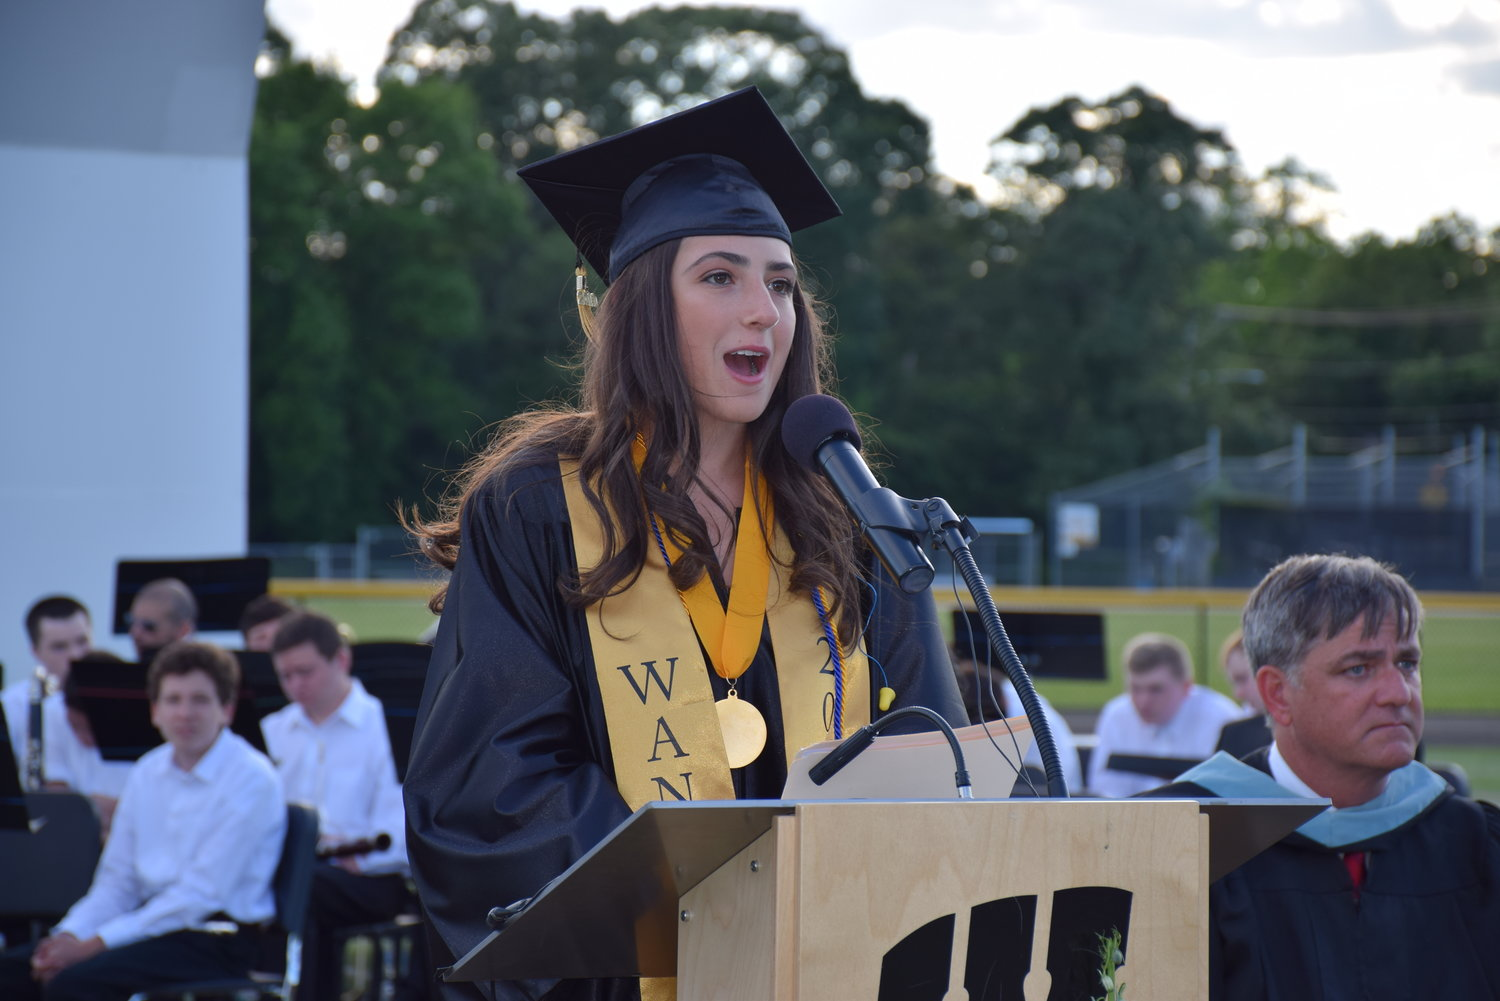 Valedictorian Samantha Minars expressed her appreciation for the Wantagh community in her remarks.